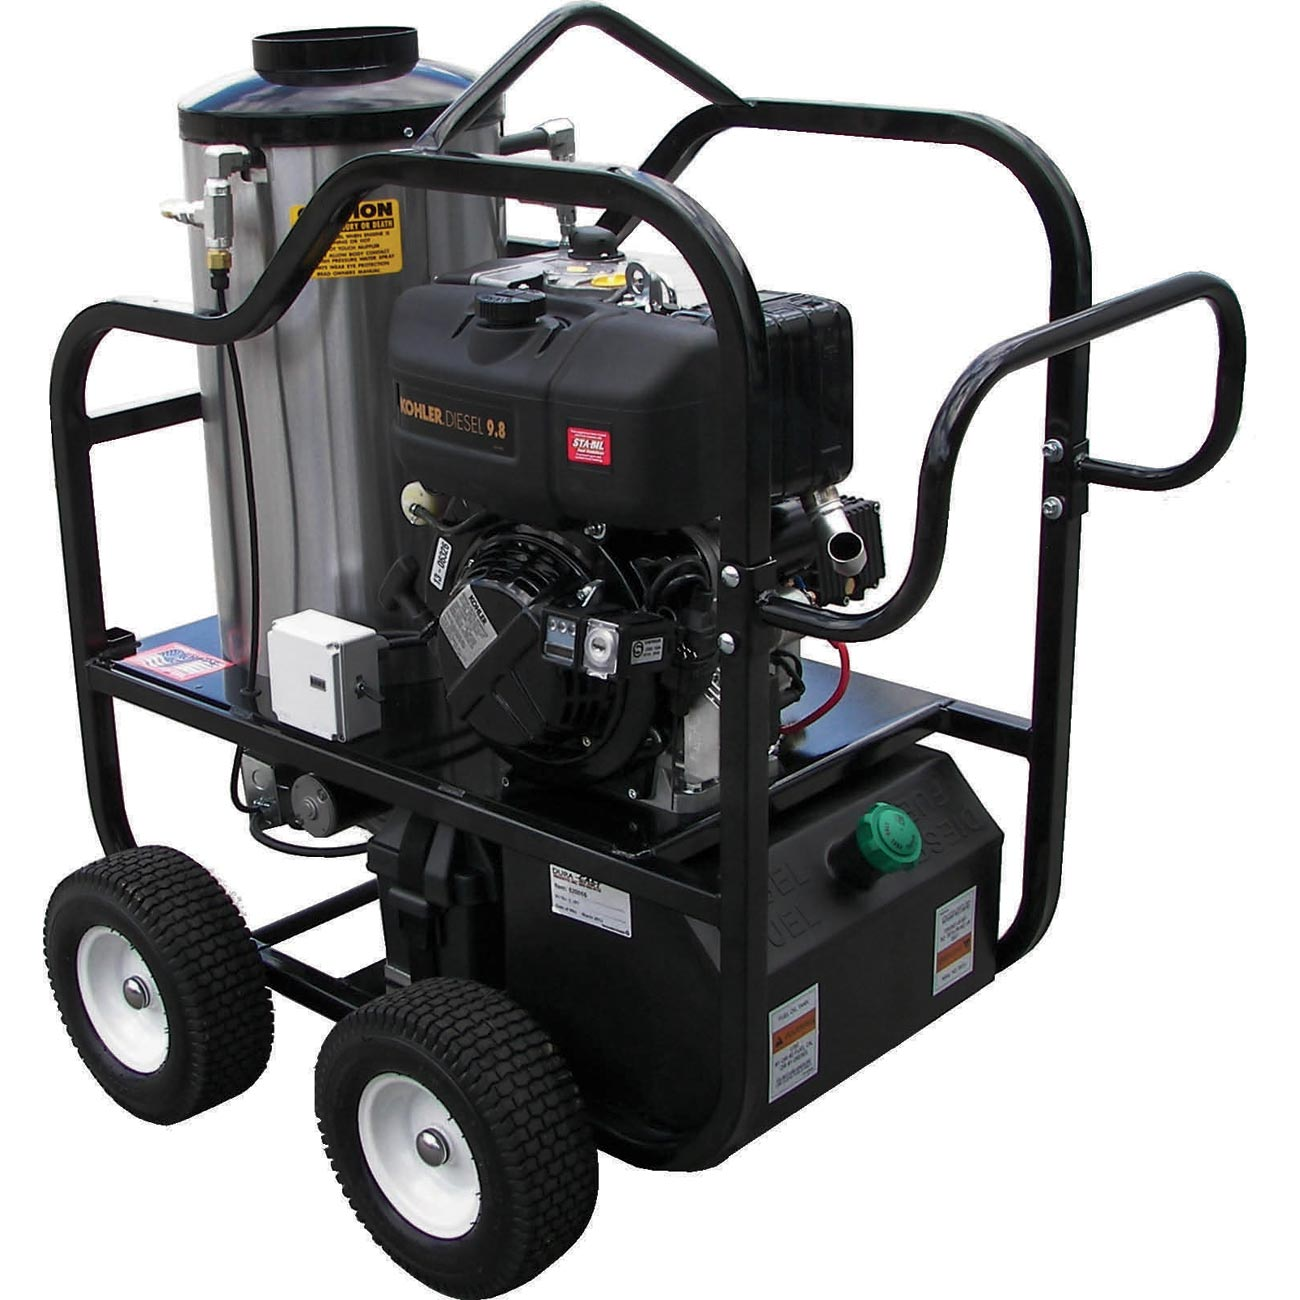 Pressure Pro 4012-15C 4 gpm 3200 psi Kohler KD420EX Diesel Cat Pump HOT Pressure Washer